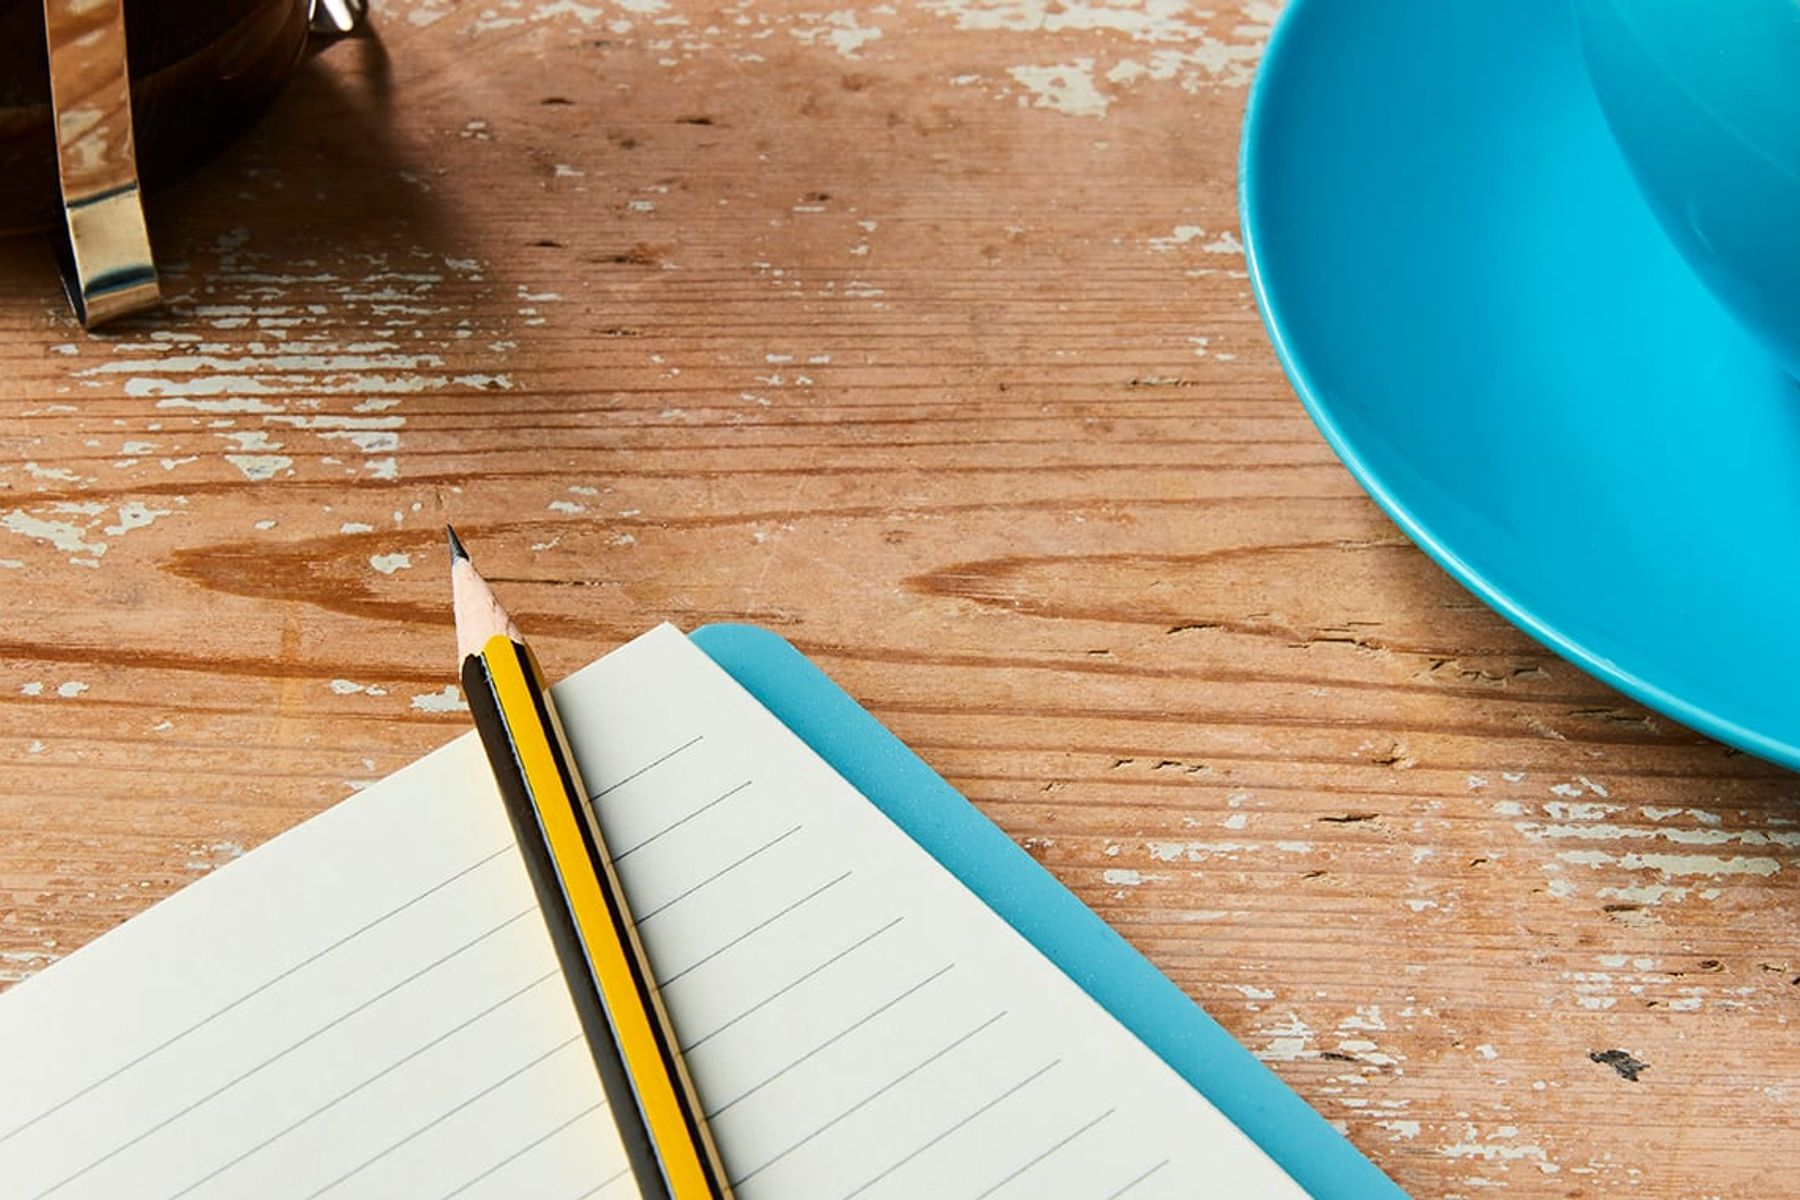 The ultimate weekly shopping list for students notepad and pencil on table top